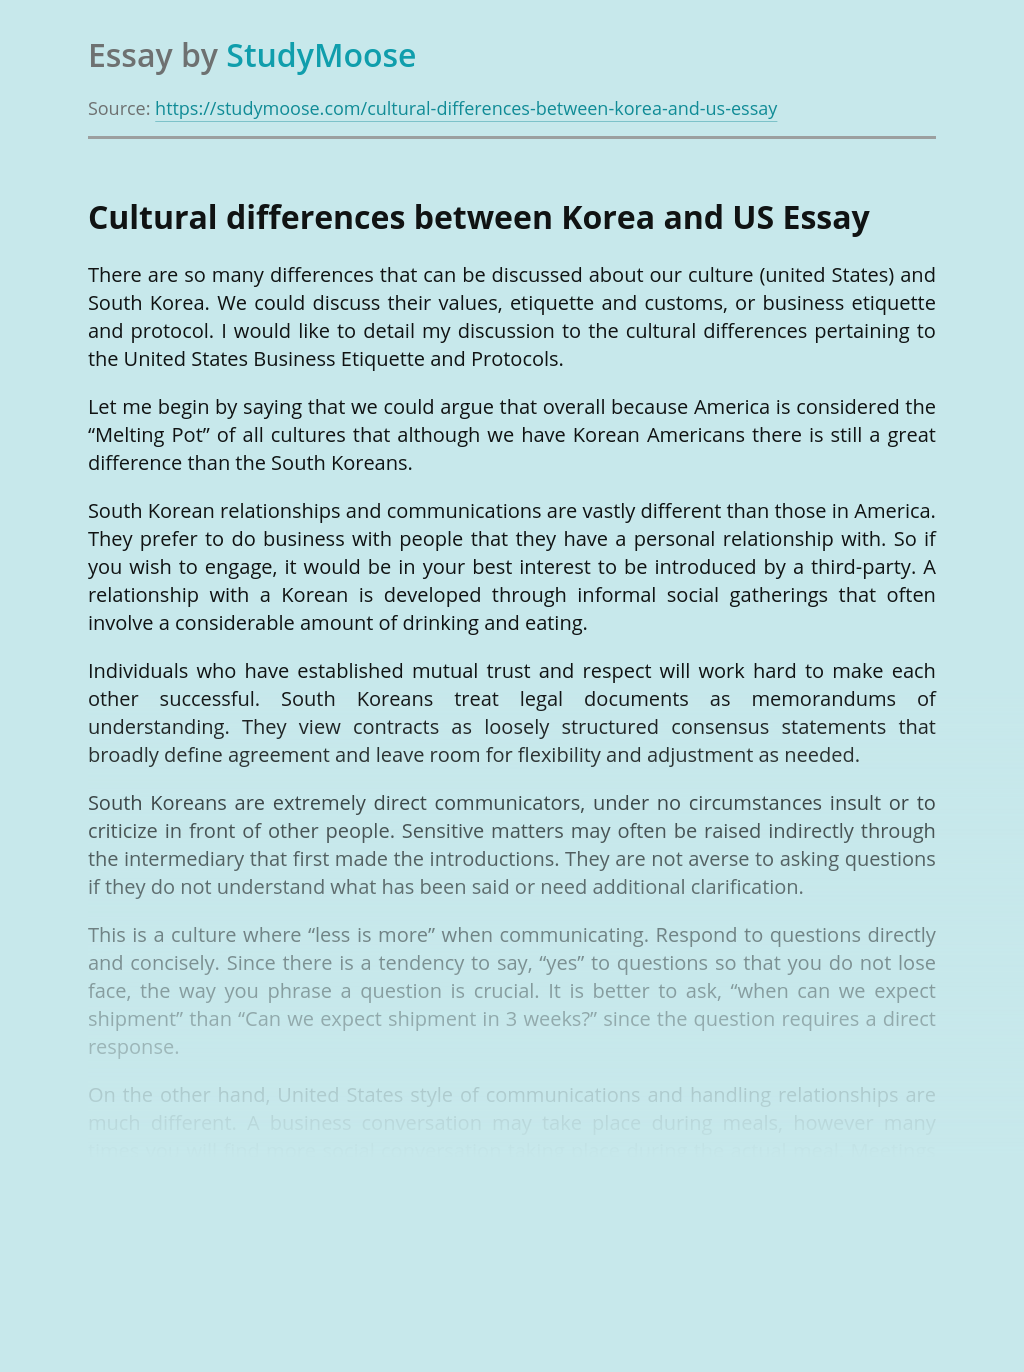 Cultural Differences Between Korea and US